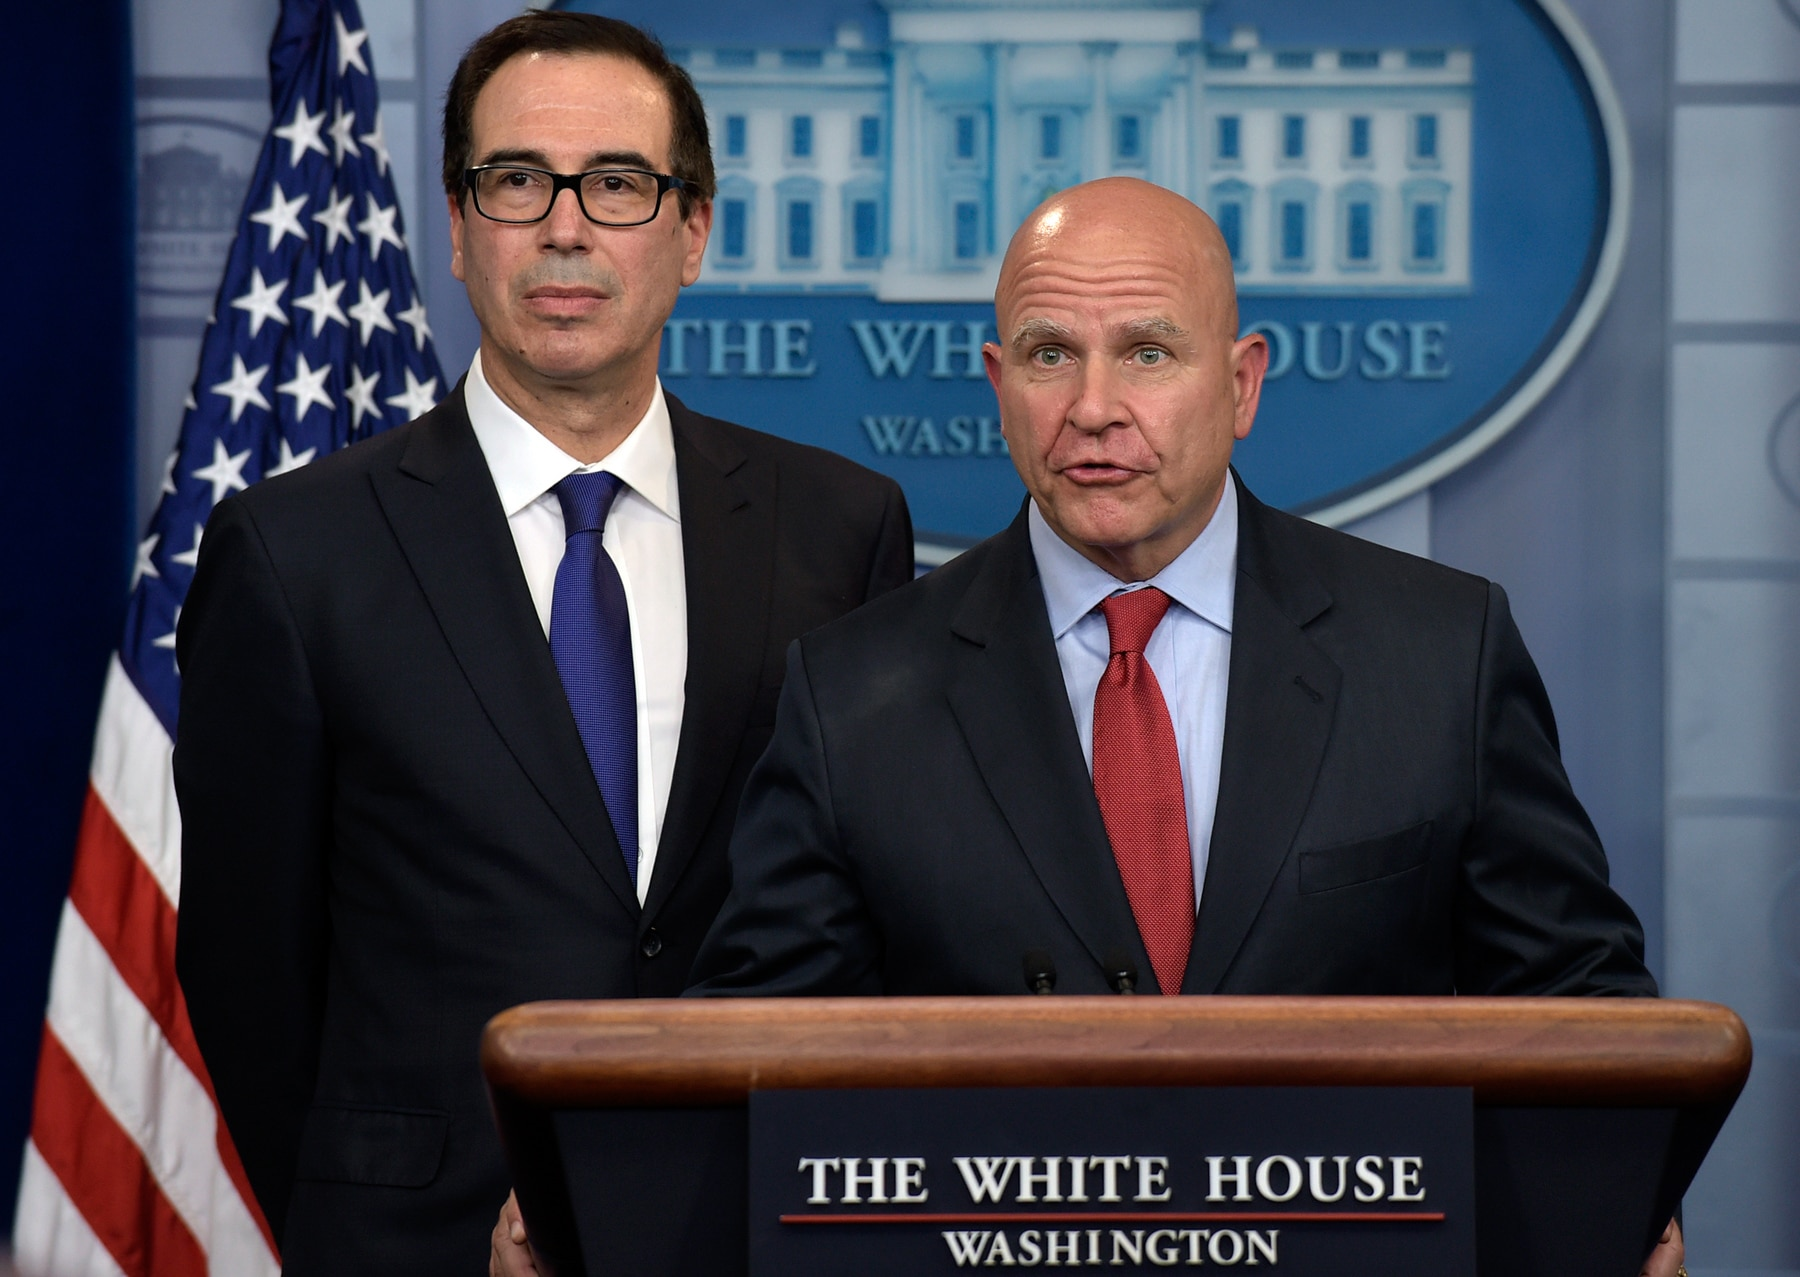 Two men standing behind lectern (© AP Images)